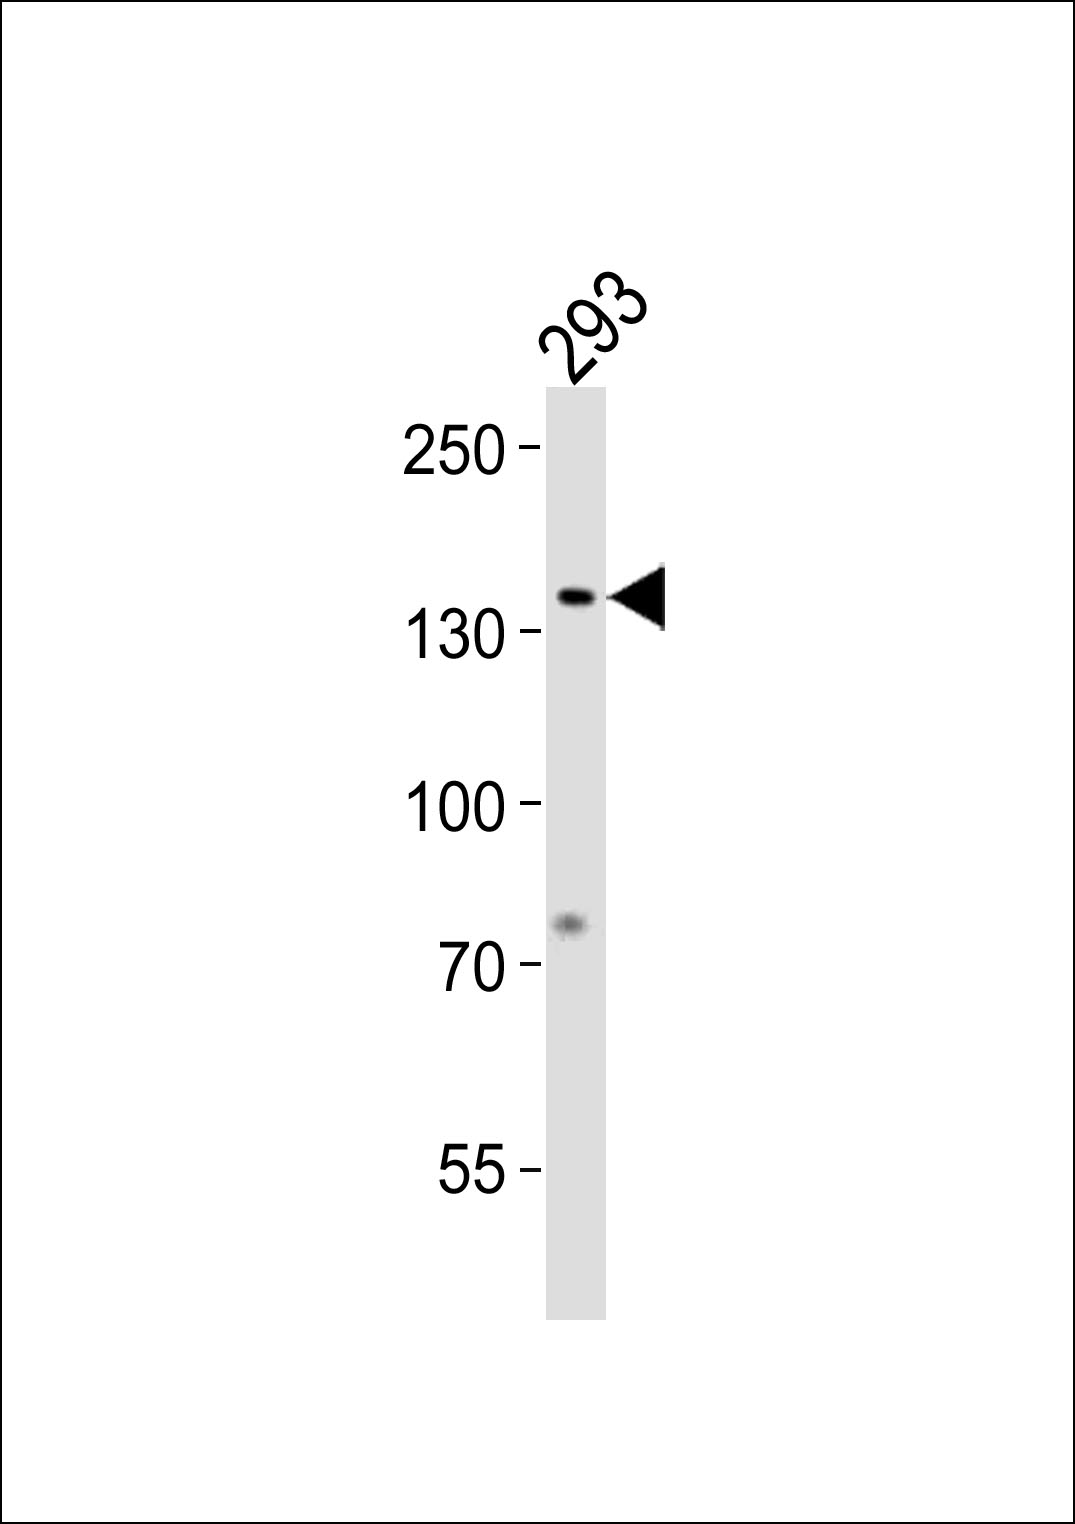 GTF2I Antibody western blot of 293 cell line lysates (35 ug/lane). The GTF2I antibody detected the GTF2I protein (arrow).